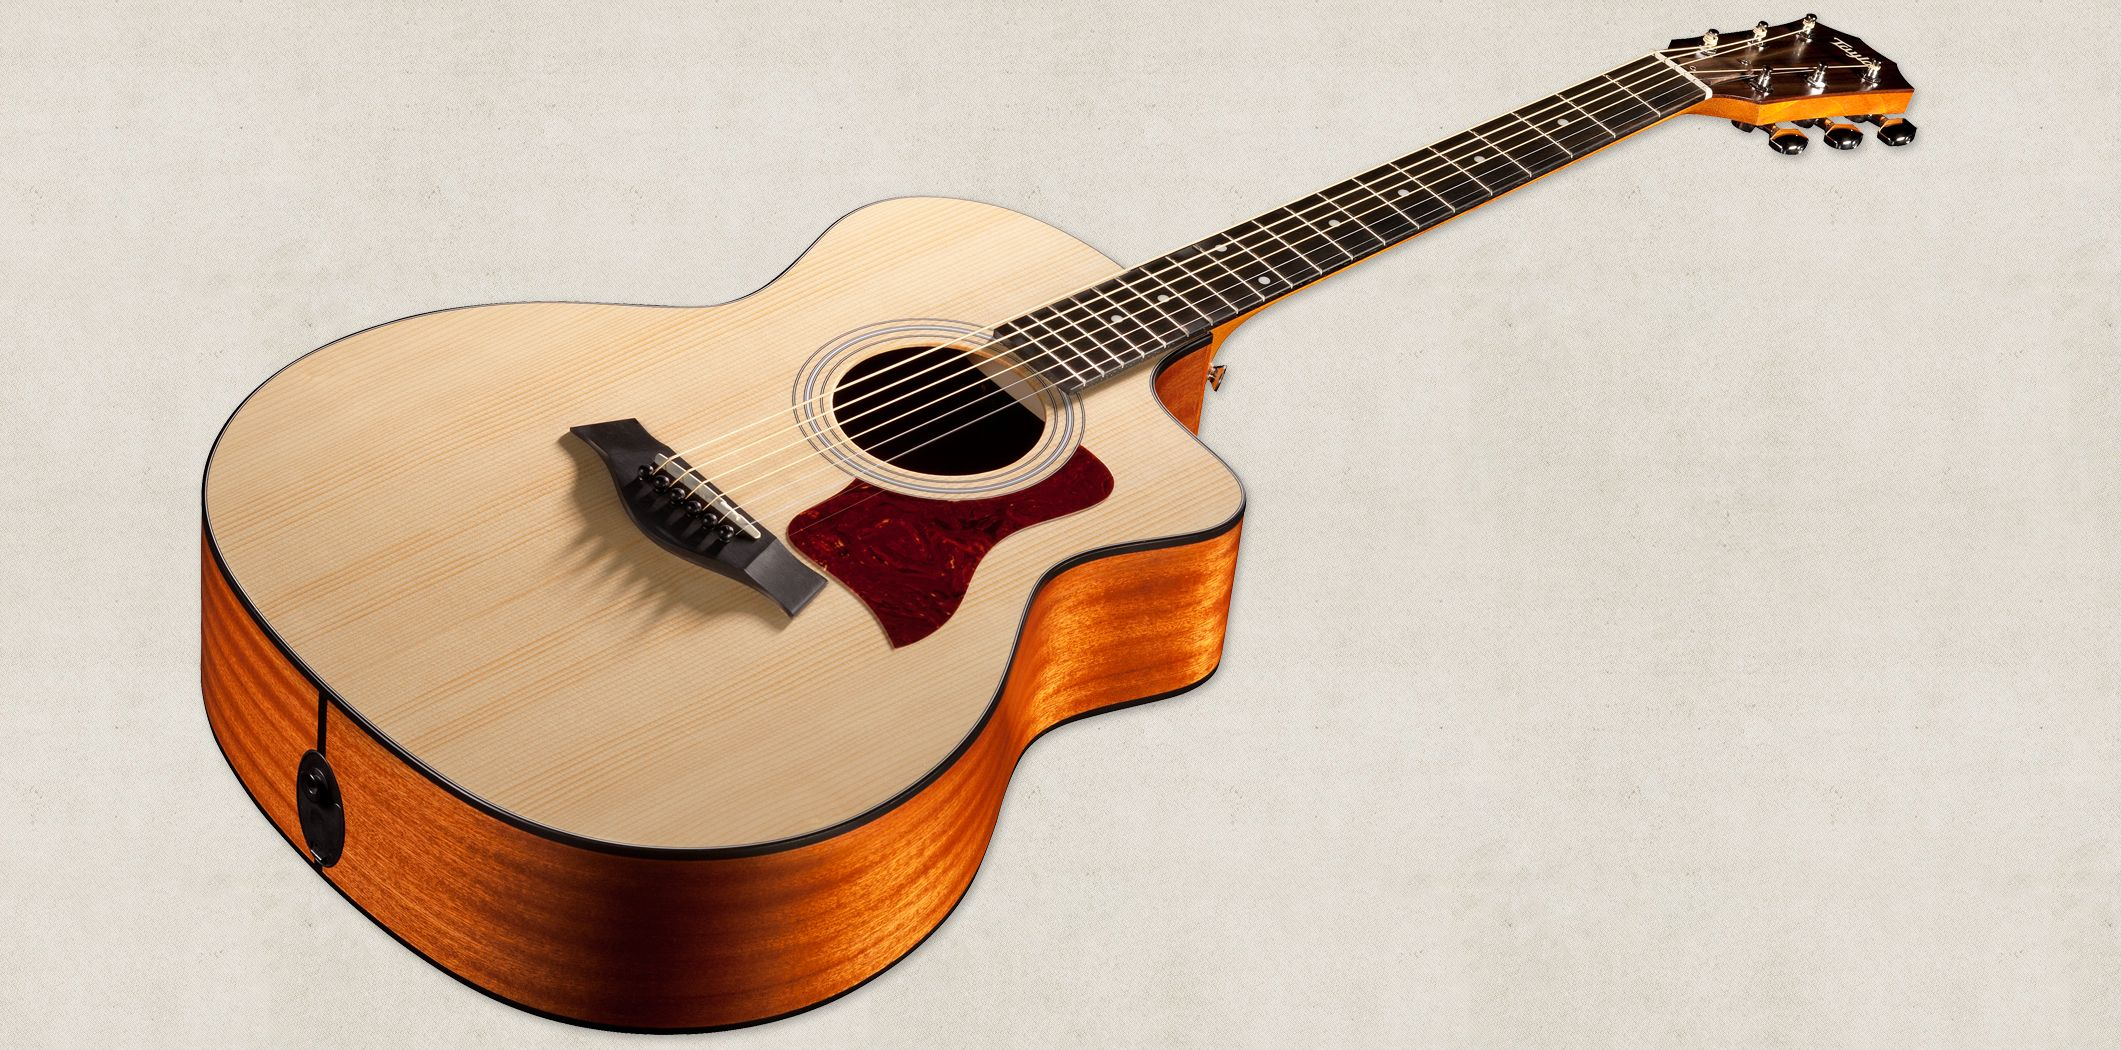 Taylor 110e Acoustic Electric Dreadnought The Guitar That Changed Everything